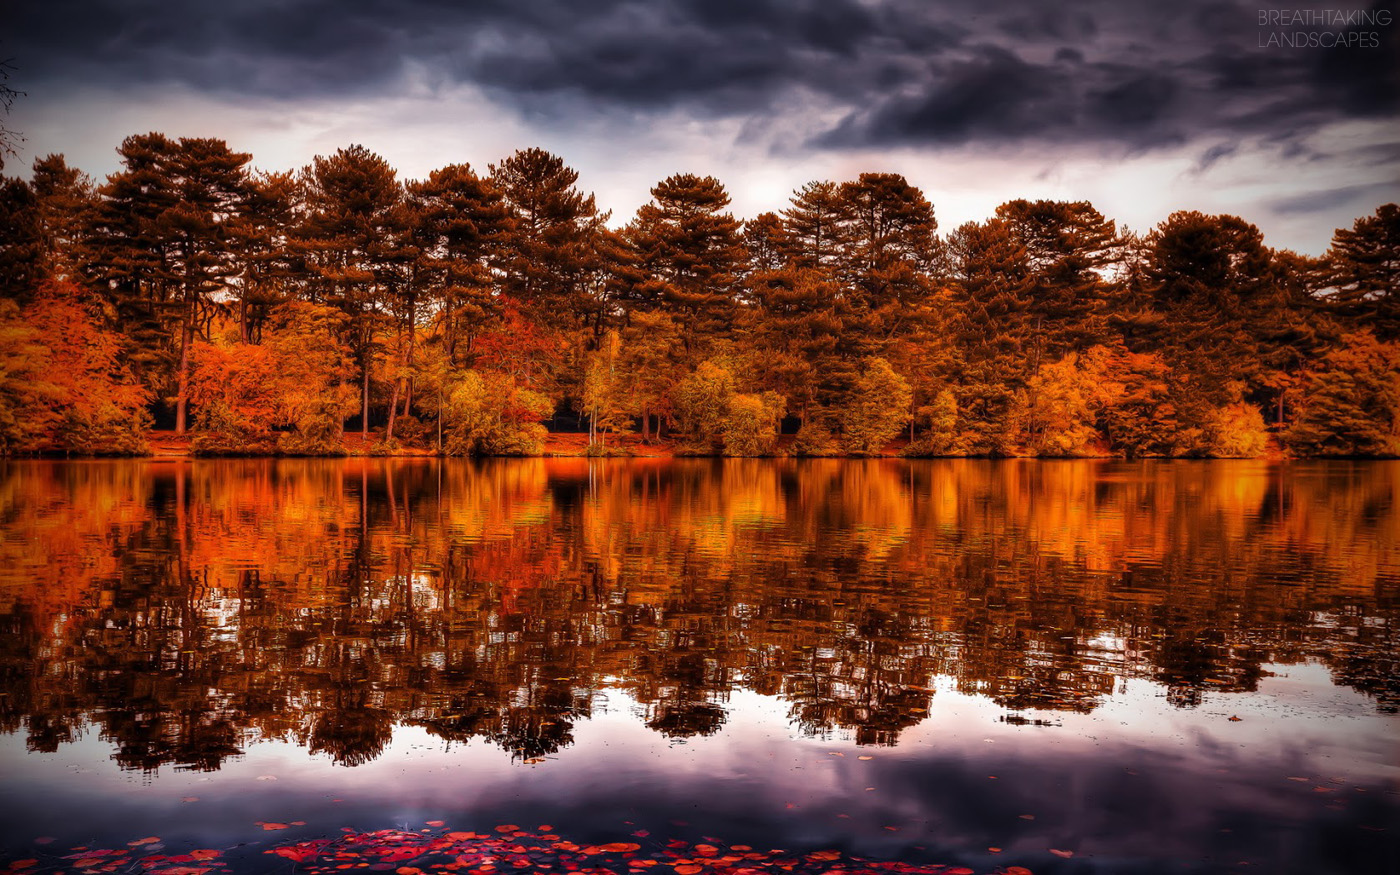 Breathtaking Fall Landscapes